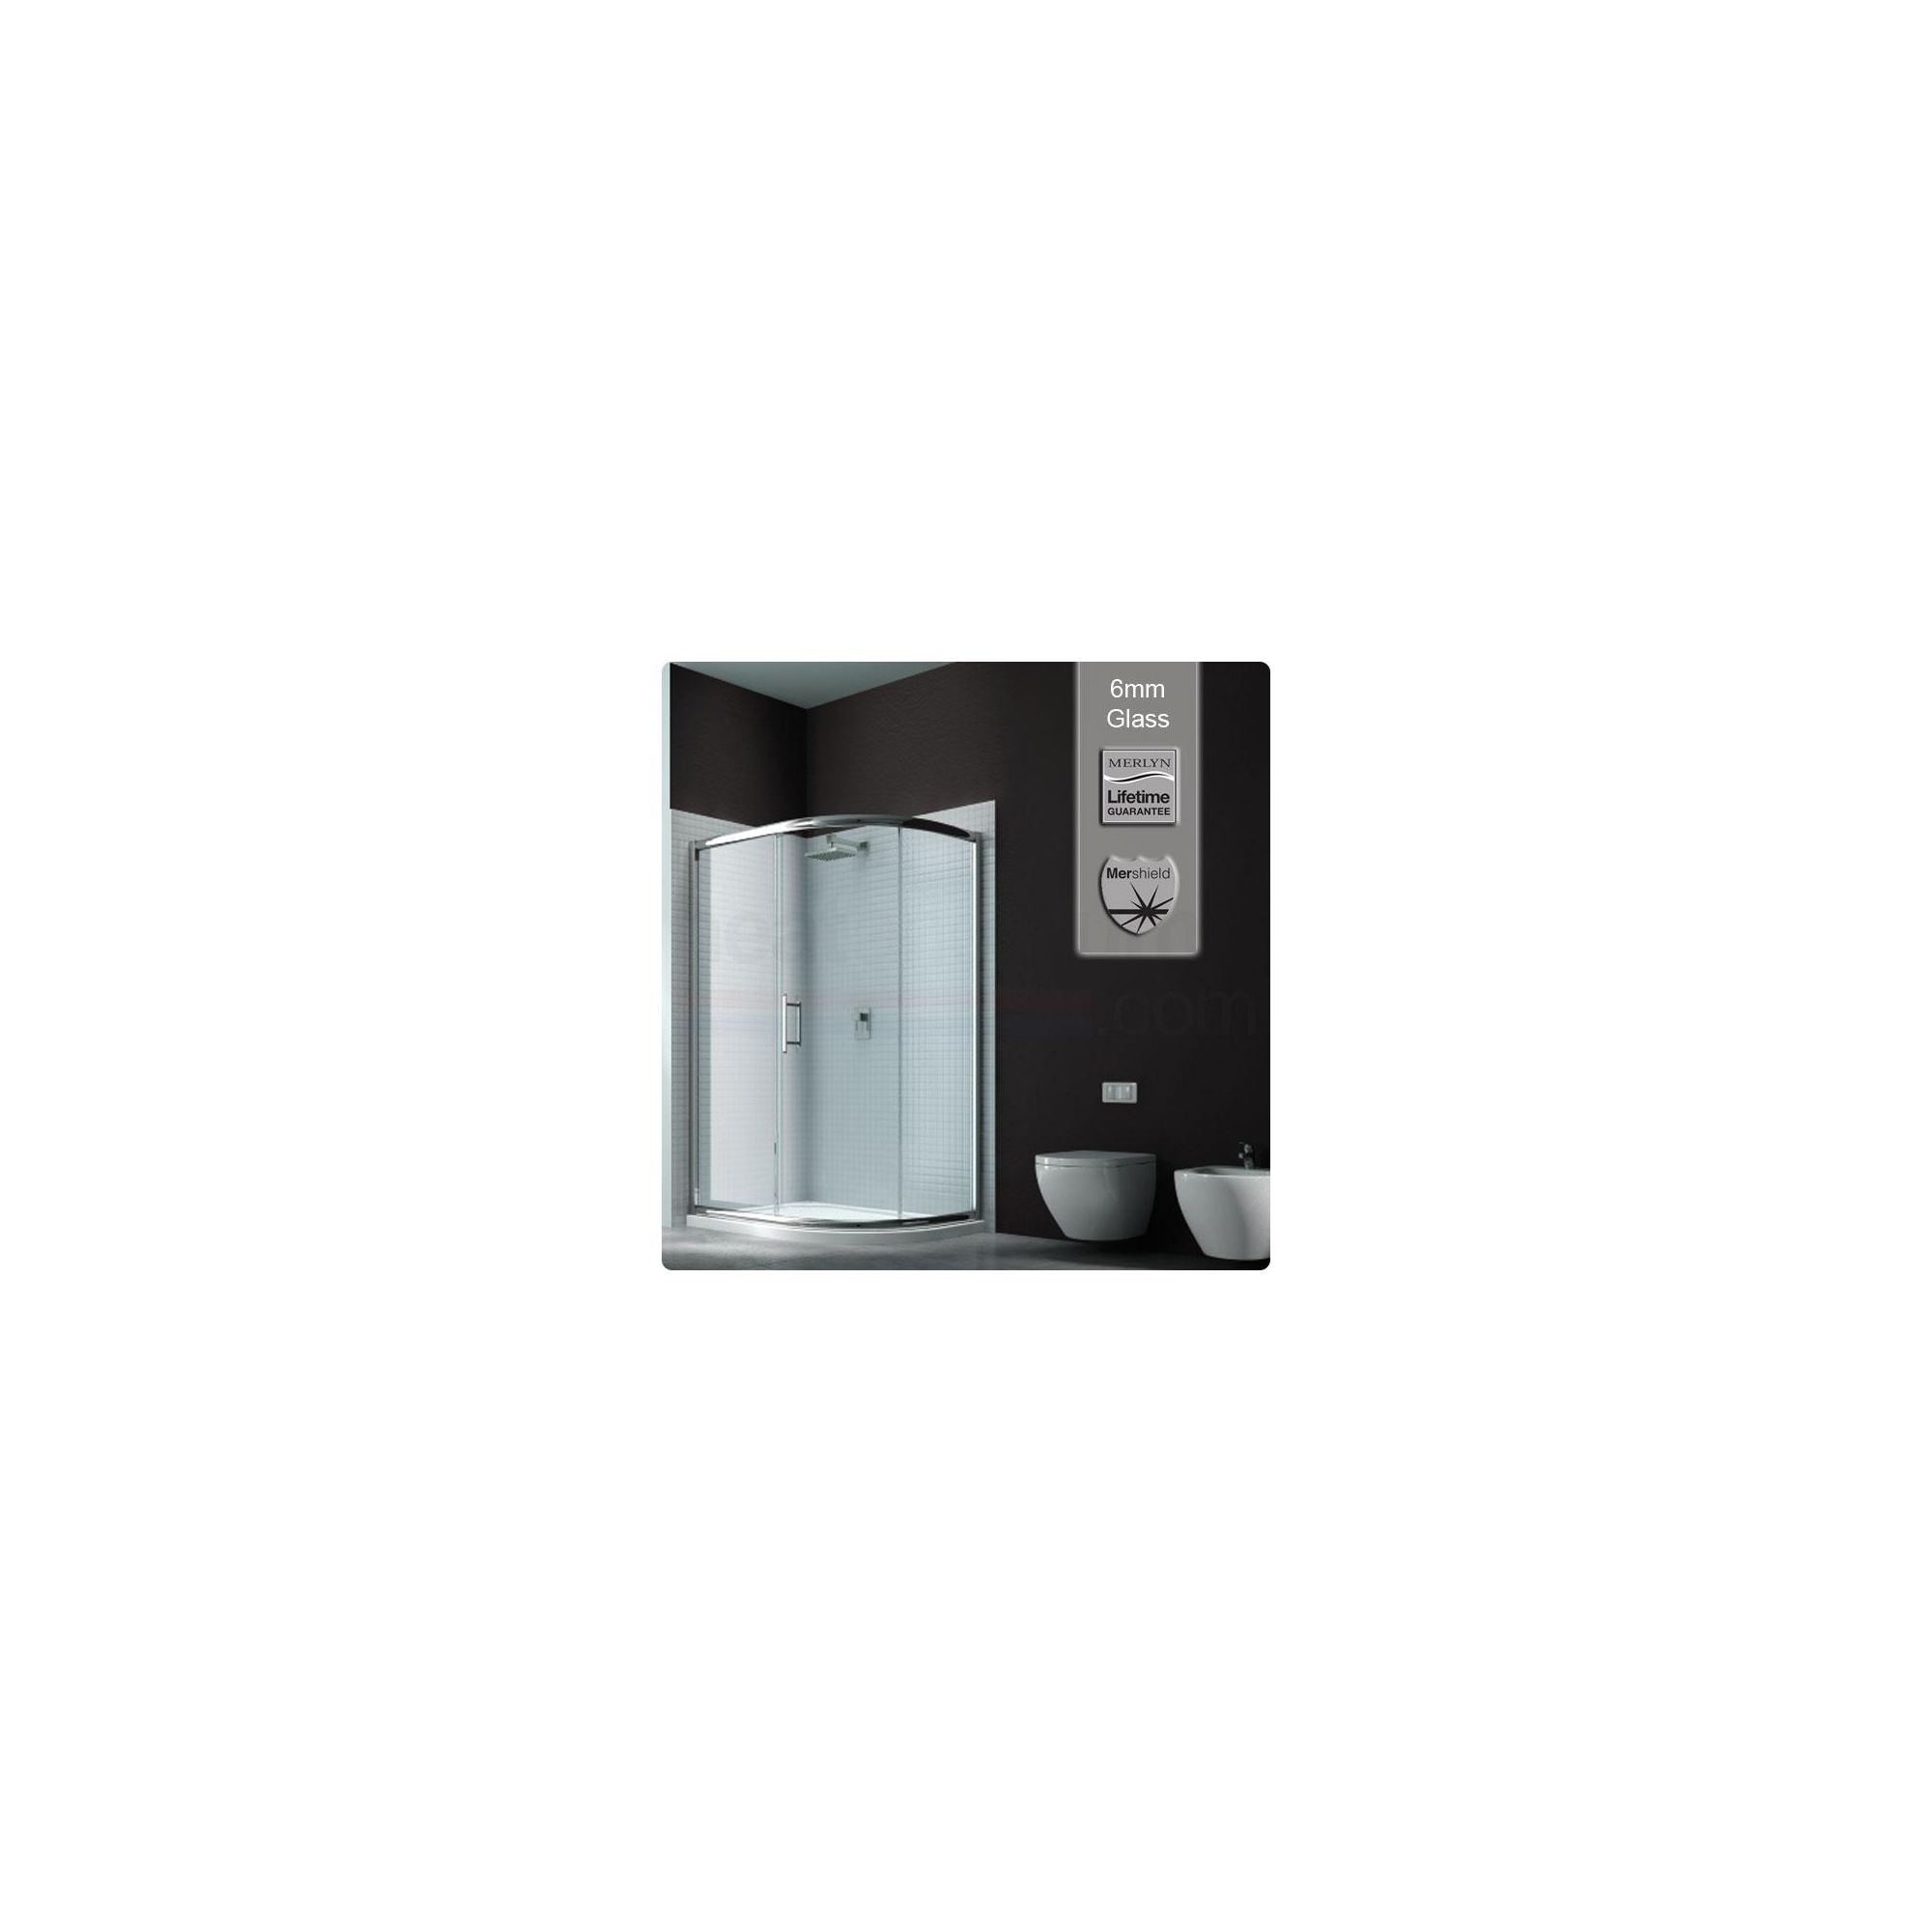 Merlyn Series 6 Sliding 1 Door Offset Quadrant Shower Enclosure, 1200mm x 900mm, Low Profile Tray, 6mm Glass at Tesco Direct